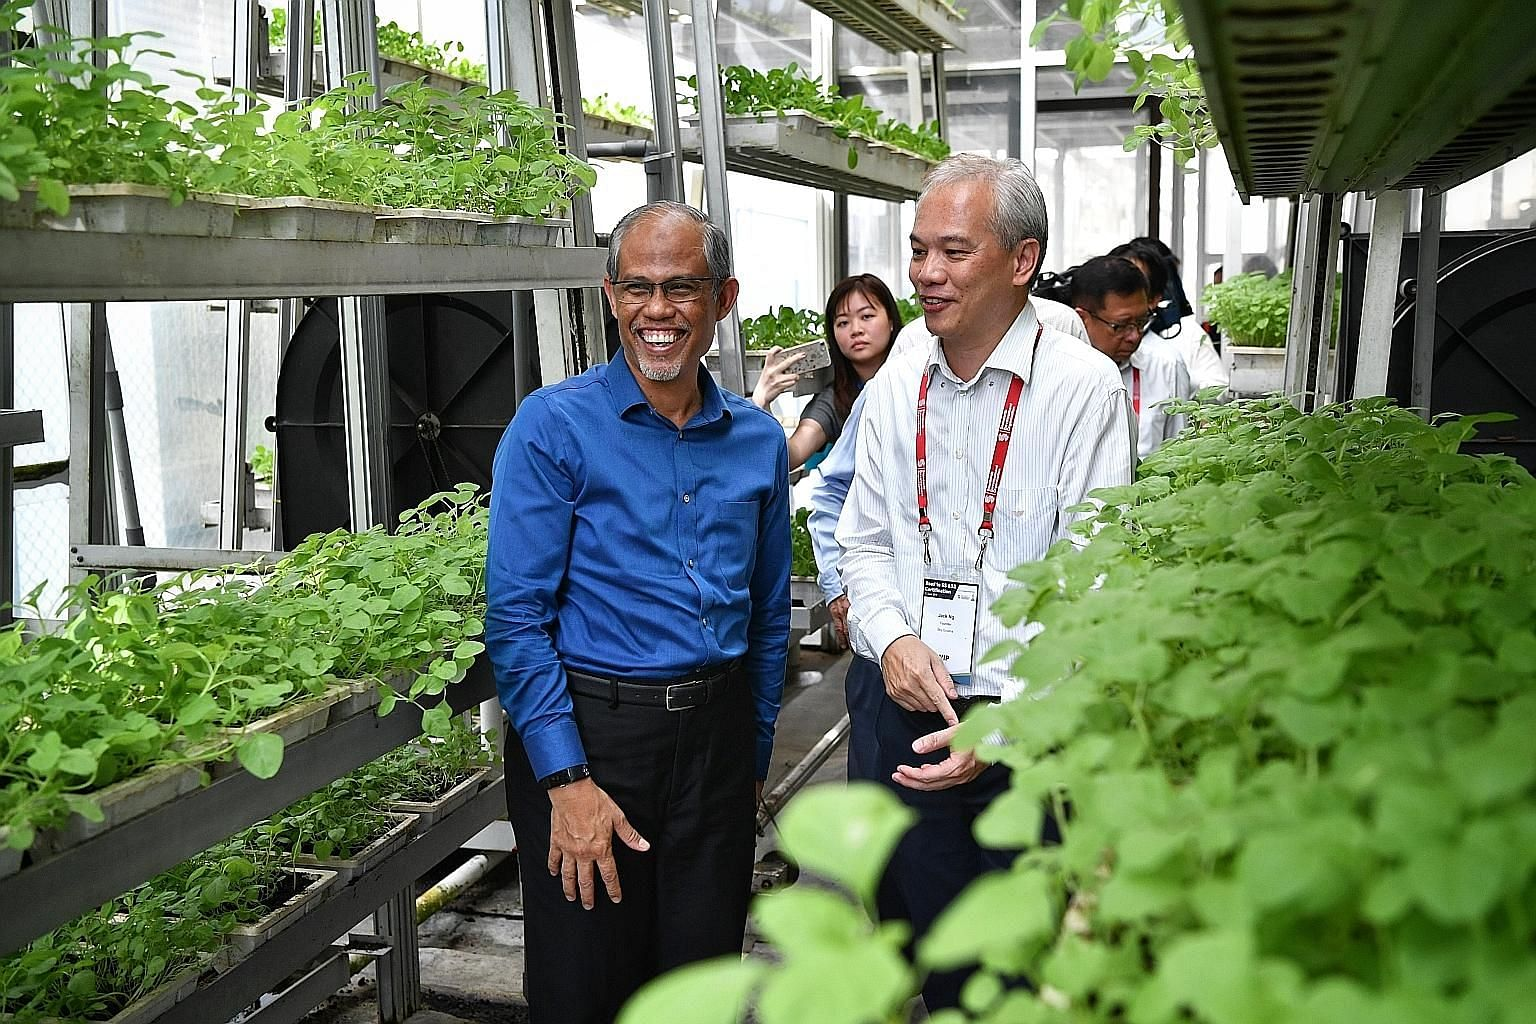 Environment and Water Resources Minister Masagos Zulkifli with Sky Greens founder Jack Ng during a visit to the vertical farm in Lim Chu Kang yesterday. Mr Masagos, who witnessed the certification presentation, noted the growth potential for local fa